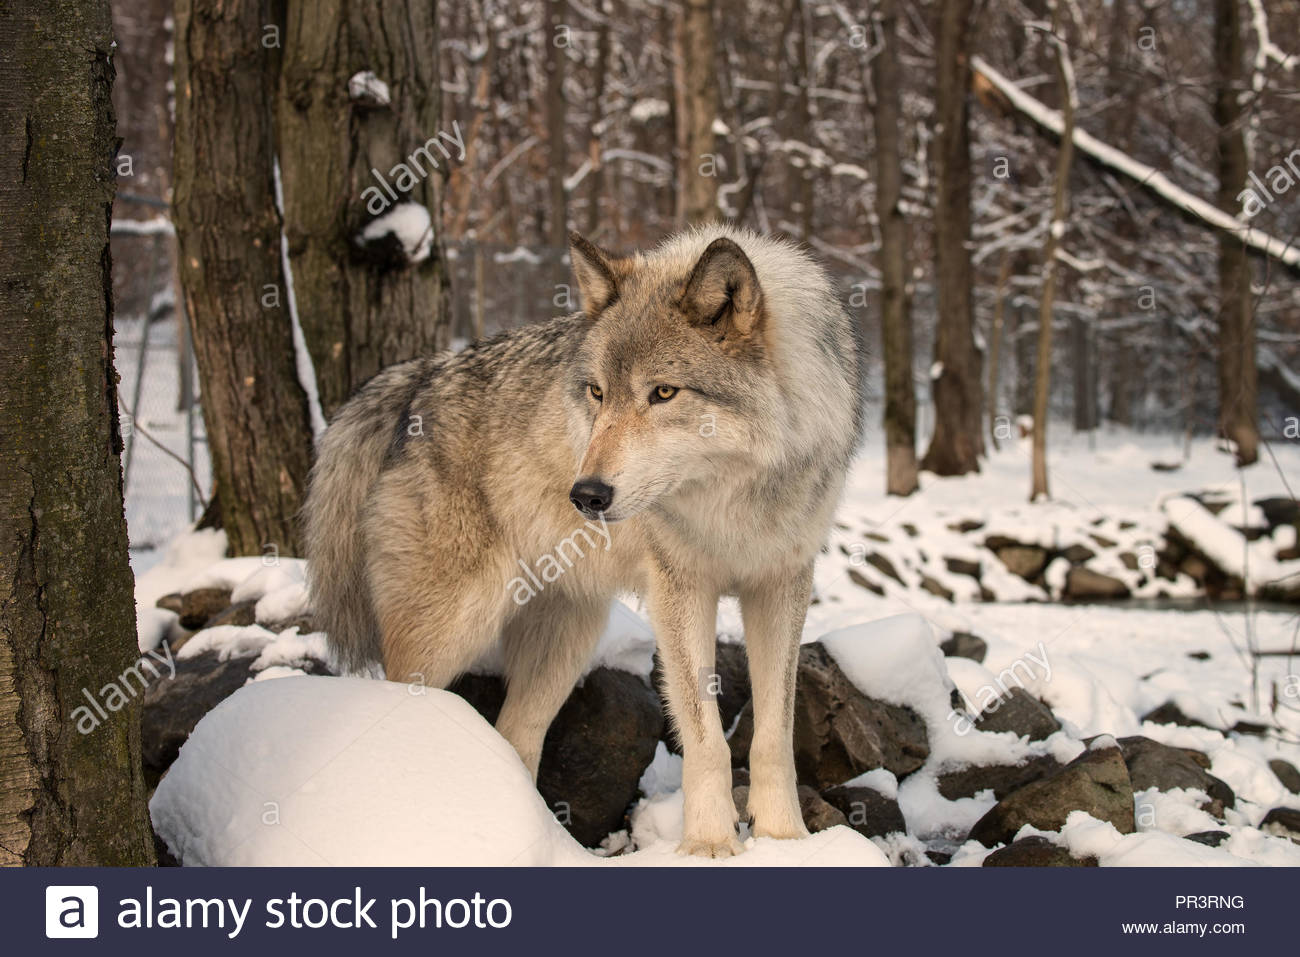 Timber Wolf (also known as a Gray Wolf or Grey Wolf) in the snow - Stock Image